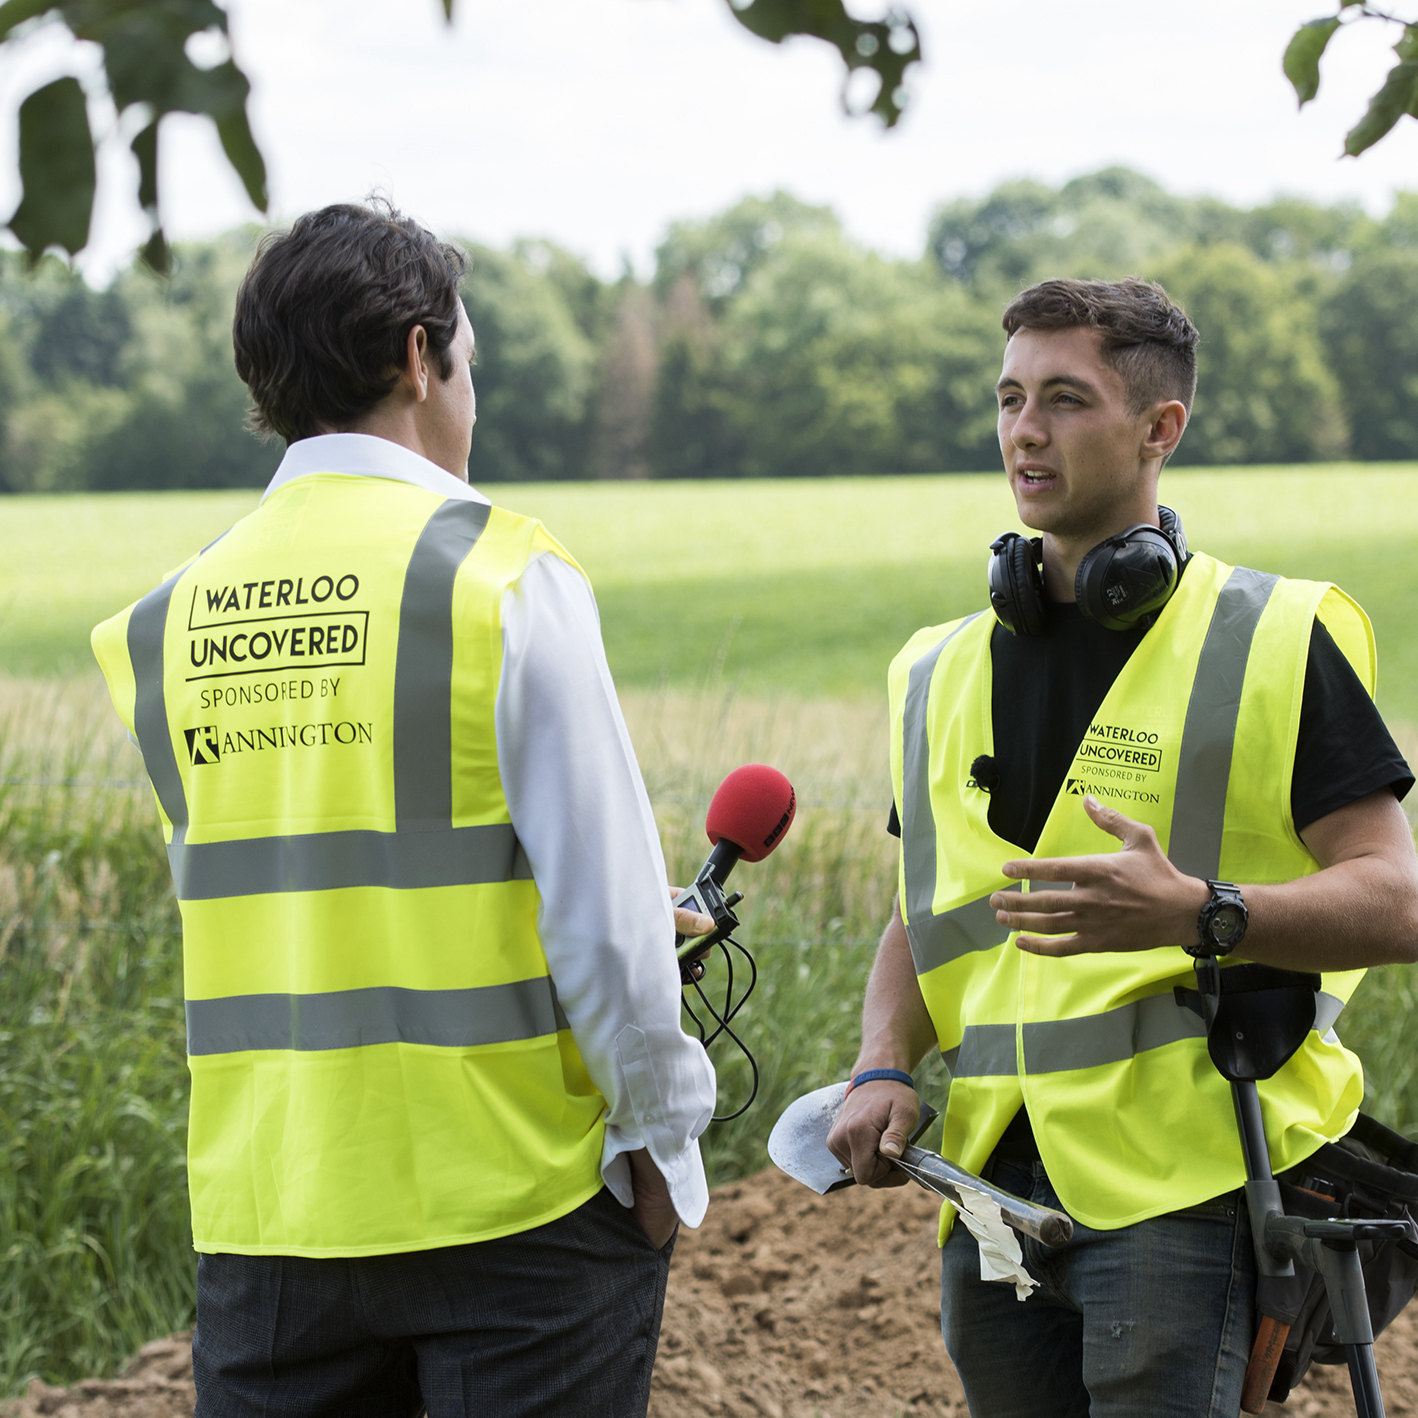 A serving soldier being interviewed for the BBC while wearing an Annington branded high vis.